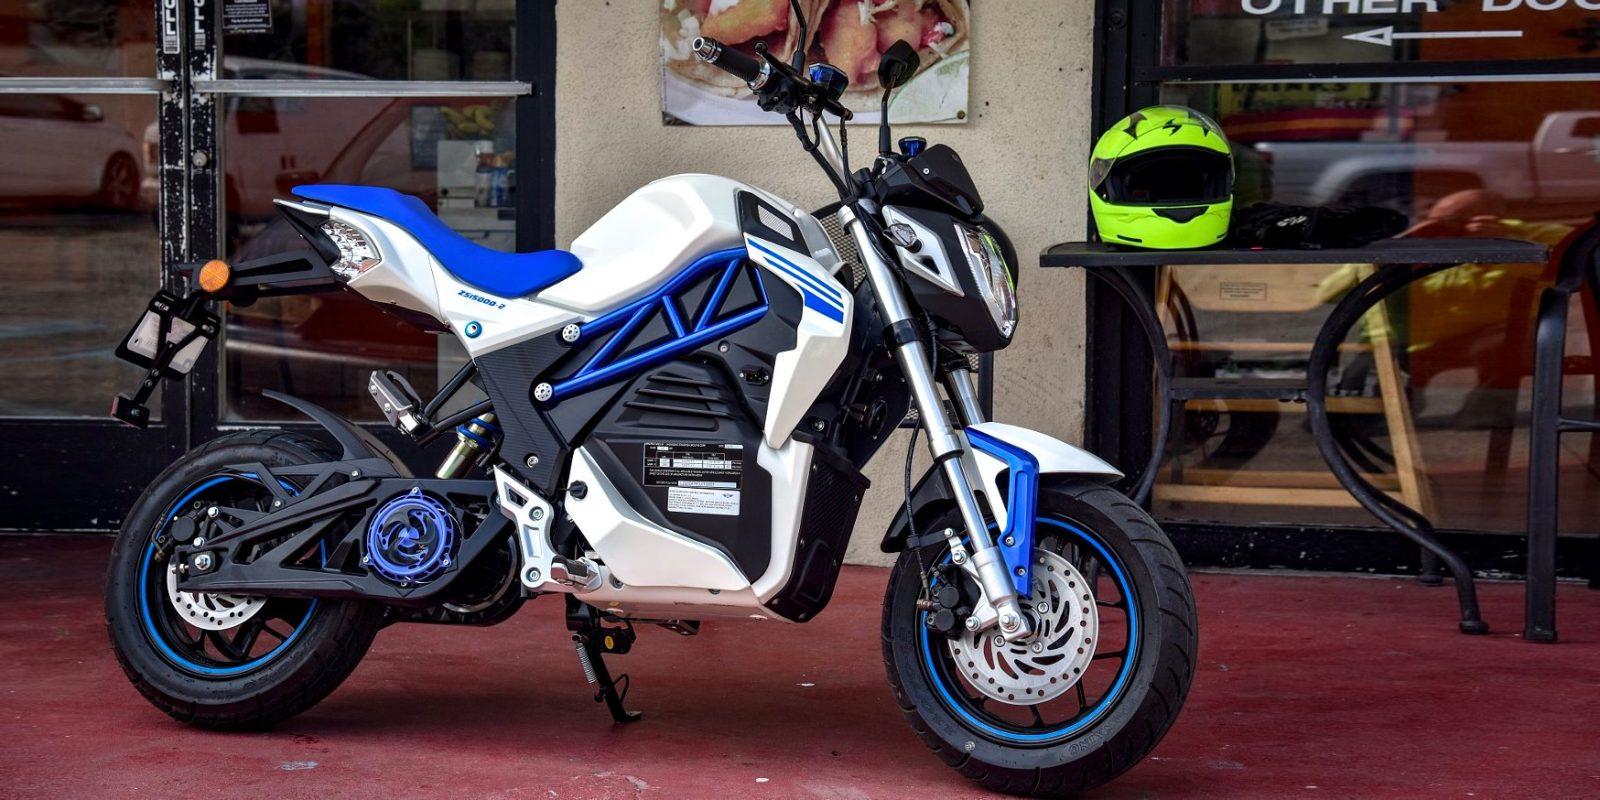 An electric motorcycle for $1,995 in the US - where do I